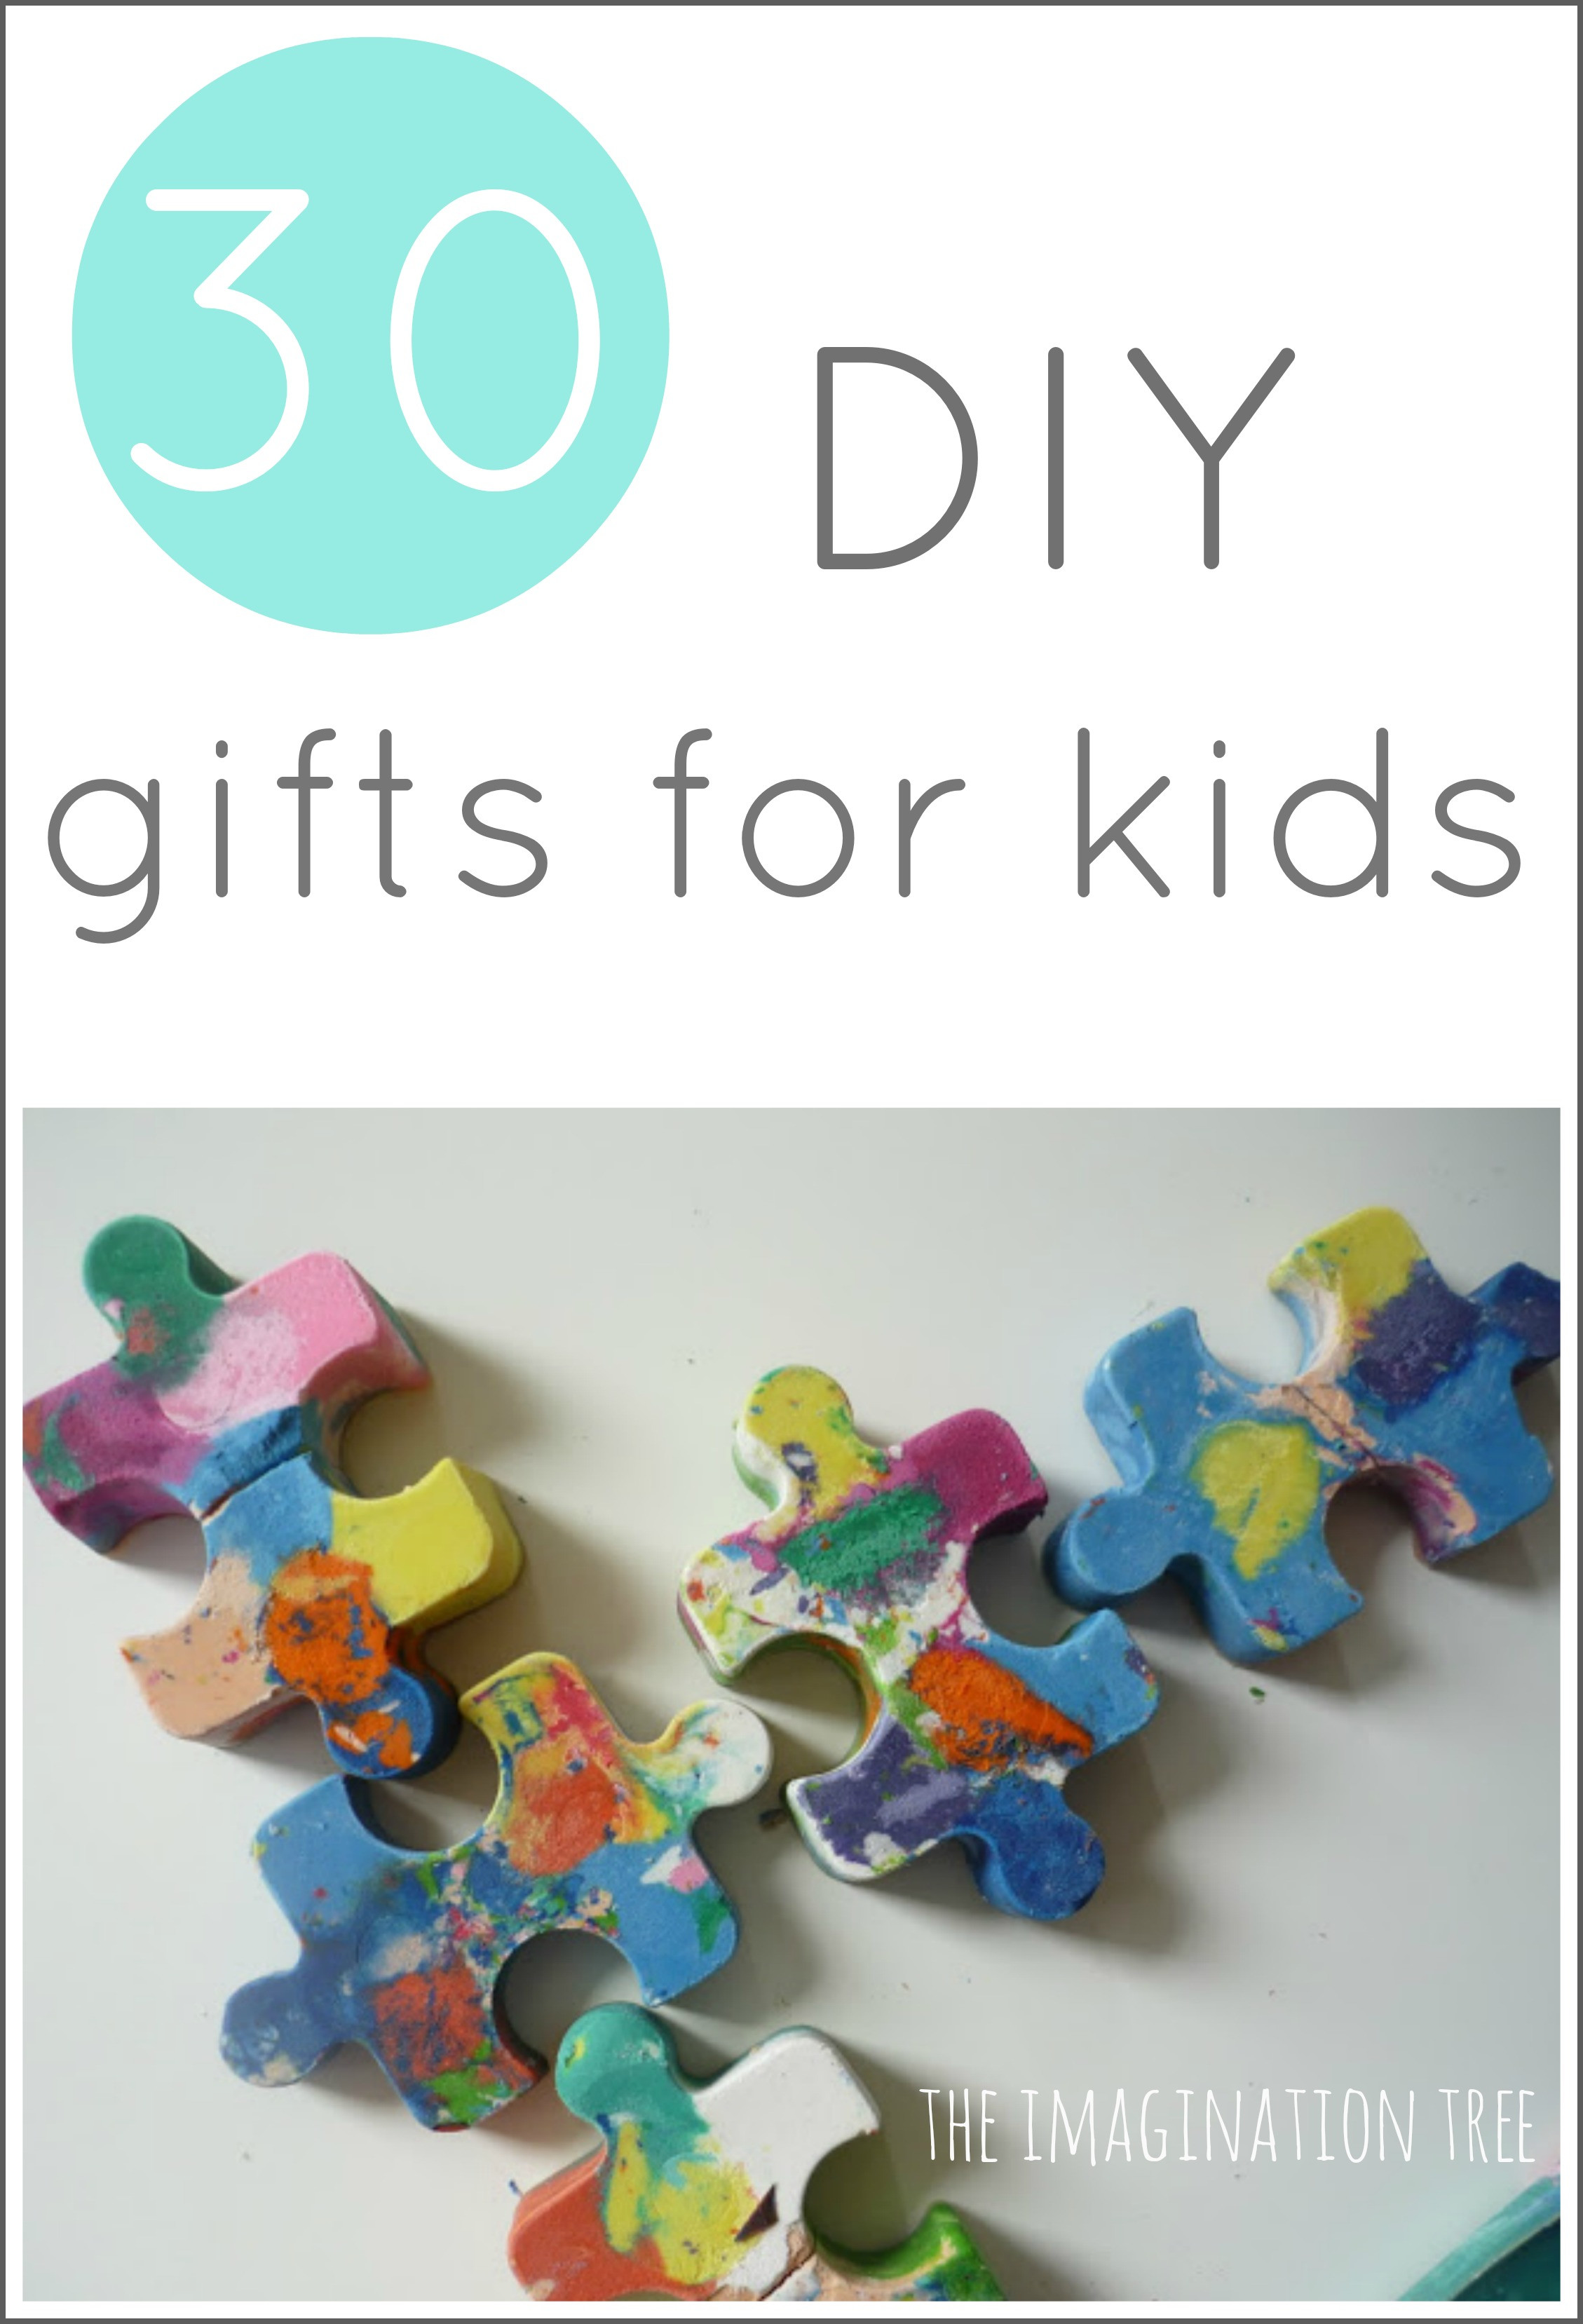 DIY Gifts For Kids  30 DIY Gifts to Make for Kids The Imagination Tree